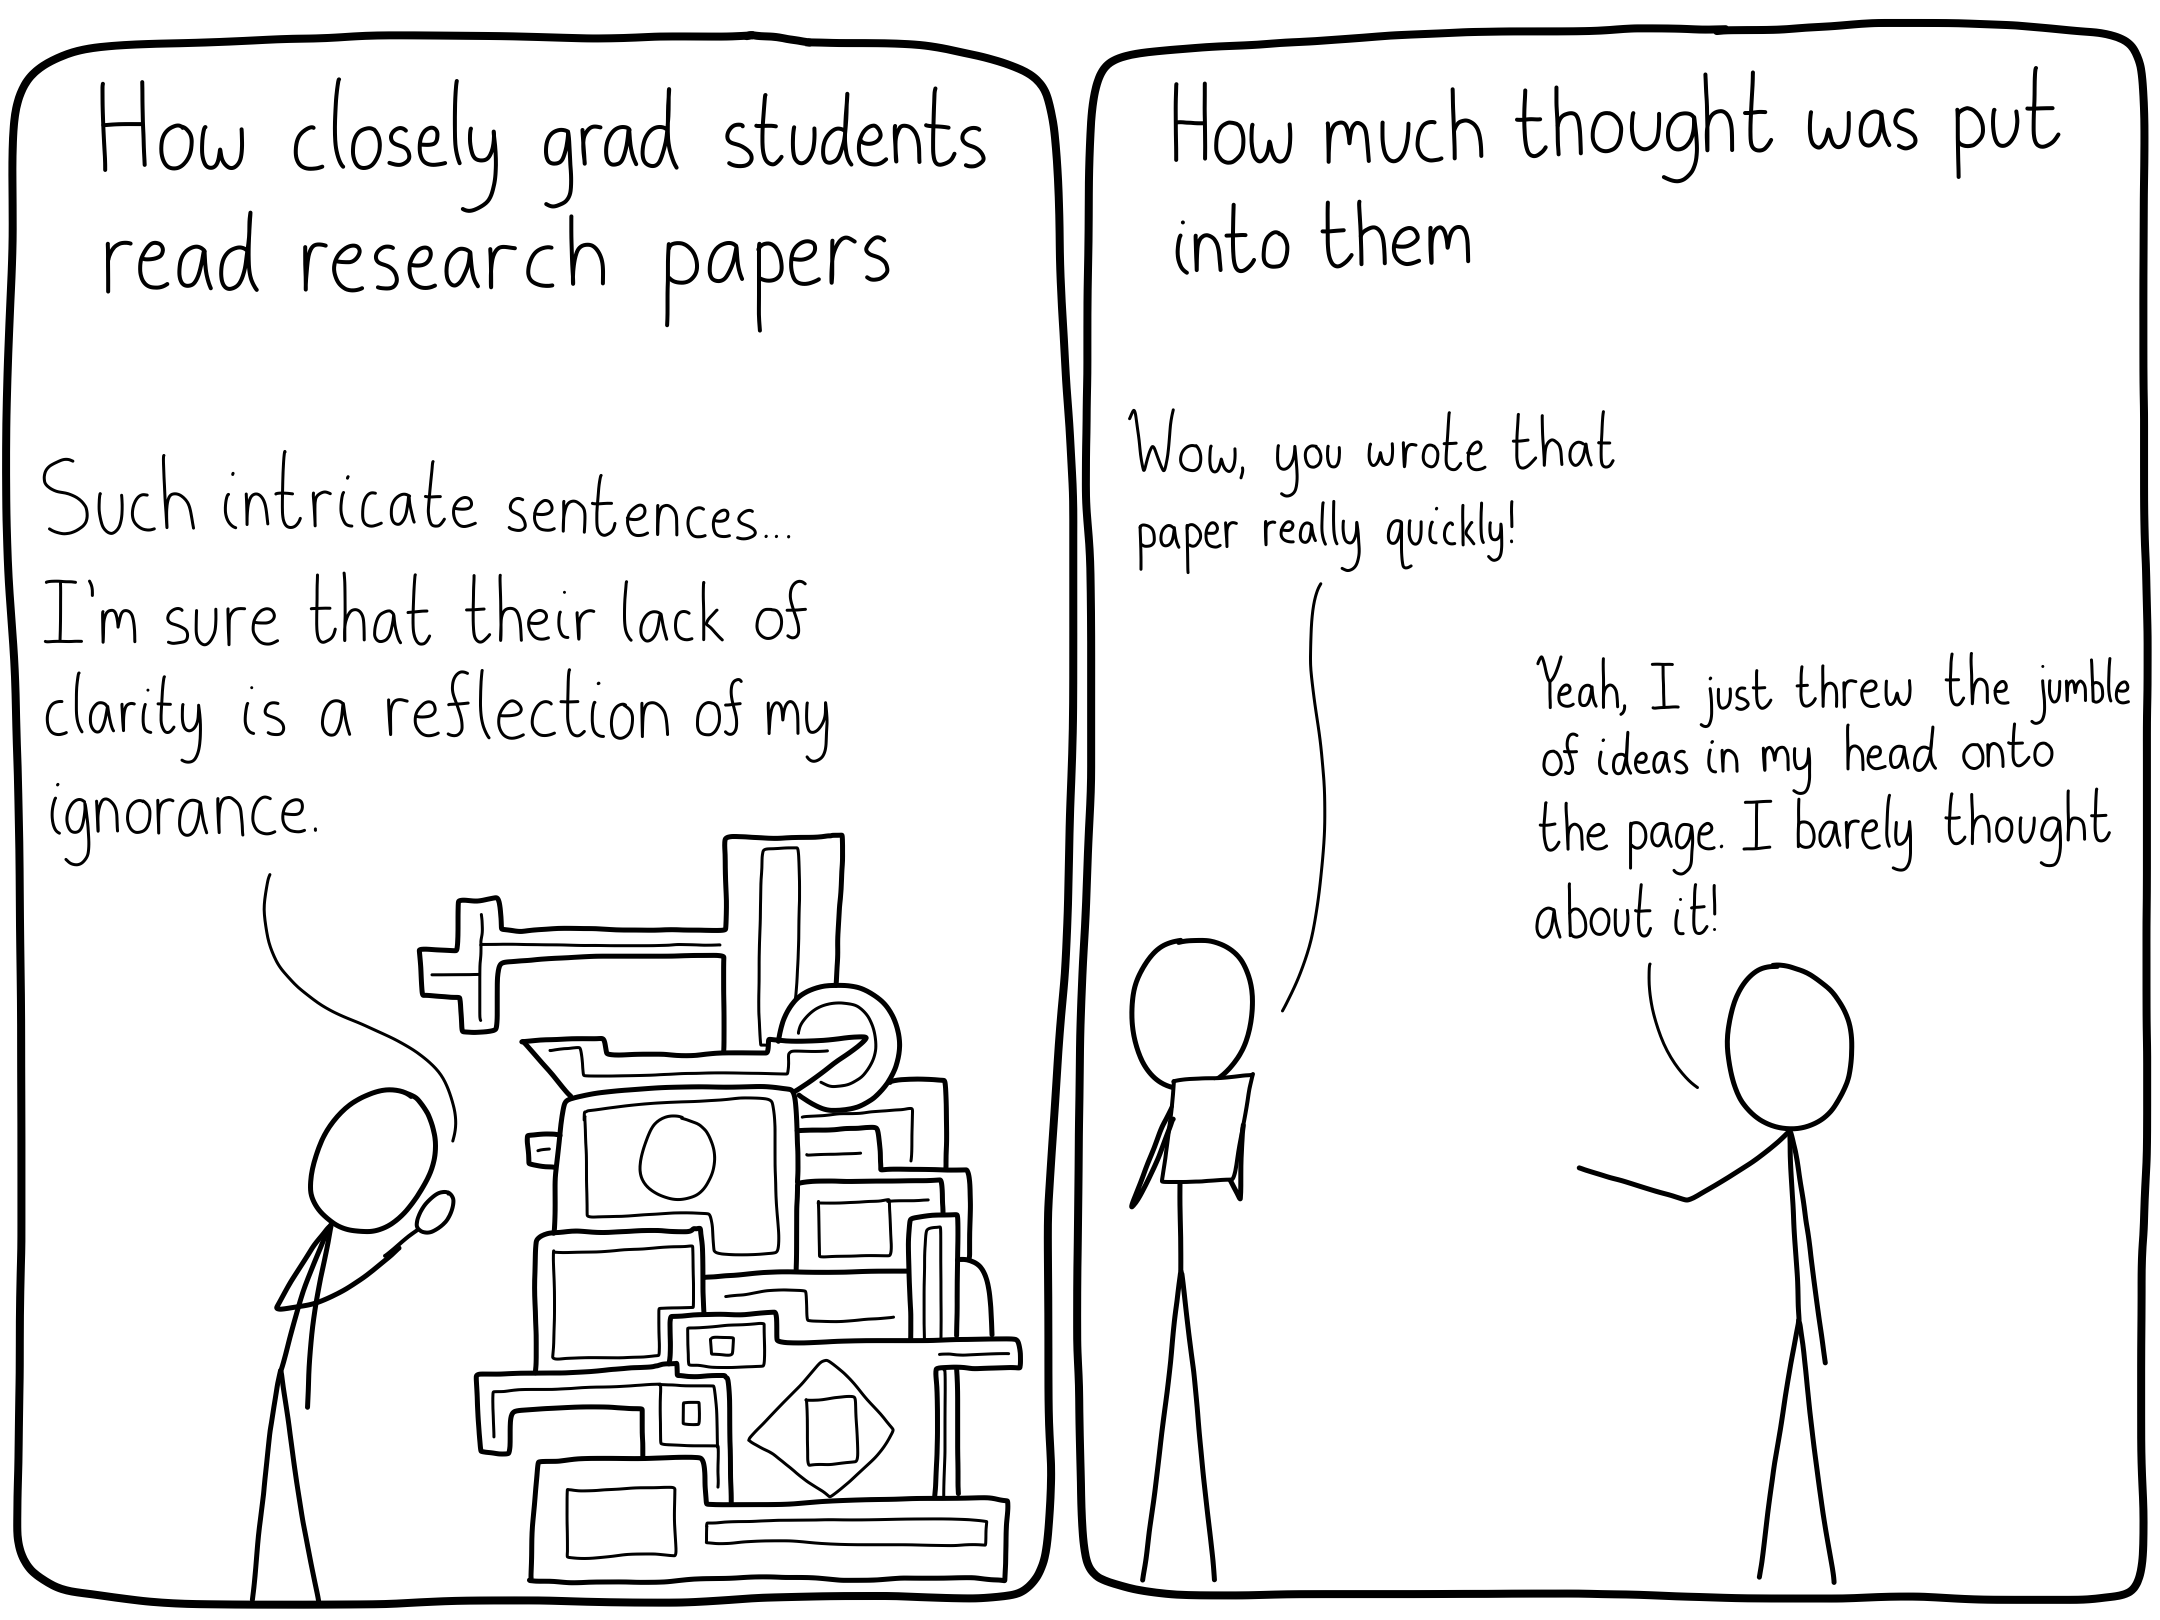 Grad students think that lines in a research paper are much more significant than they really are.